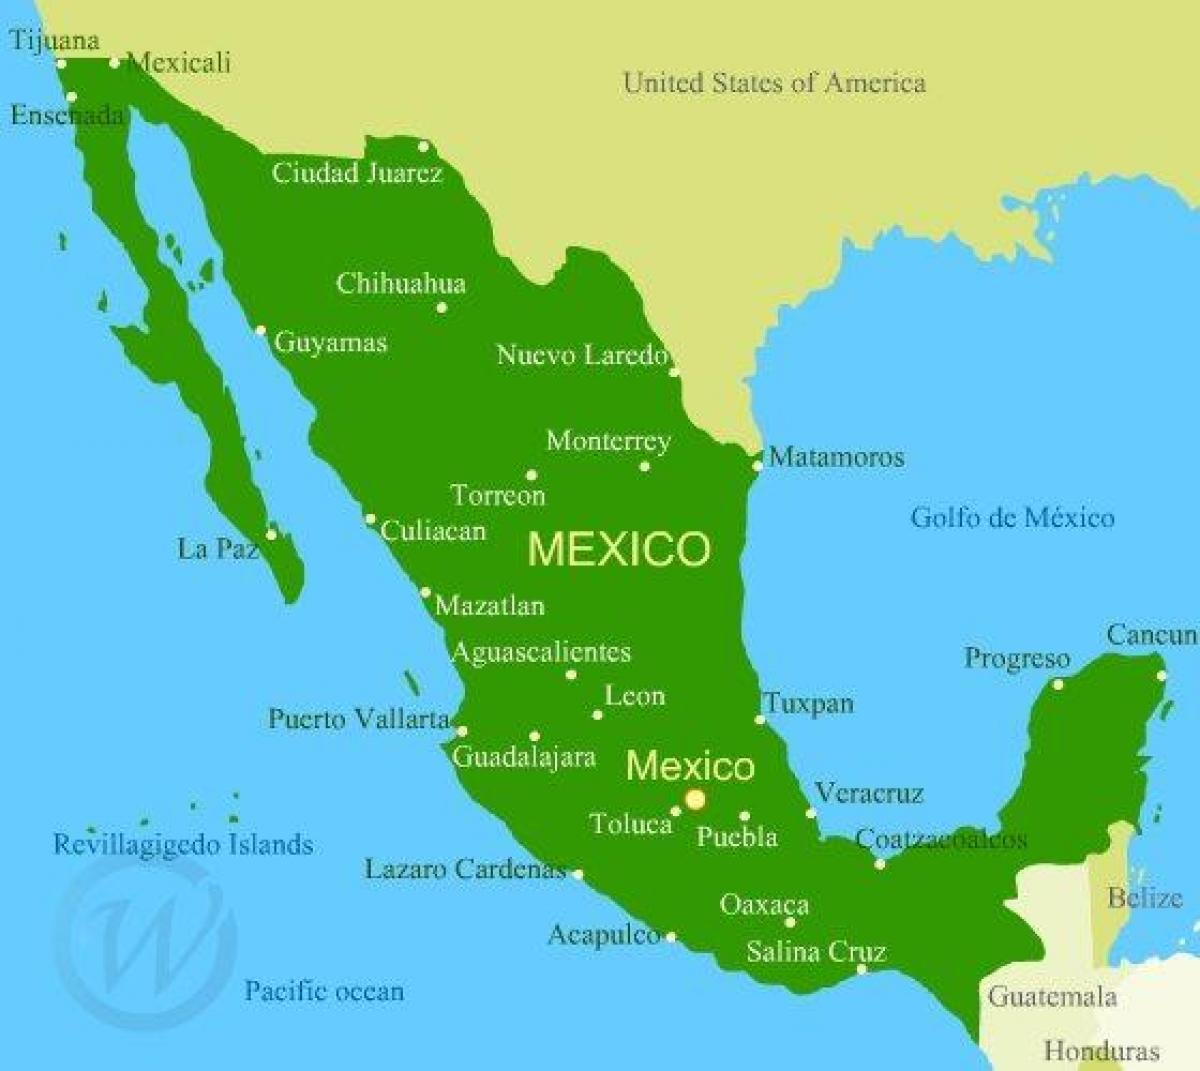 Mexico west coast map - West coast of Mexico map (Central America ...